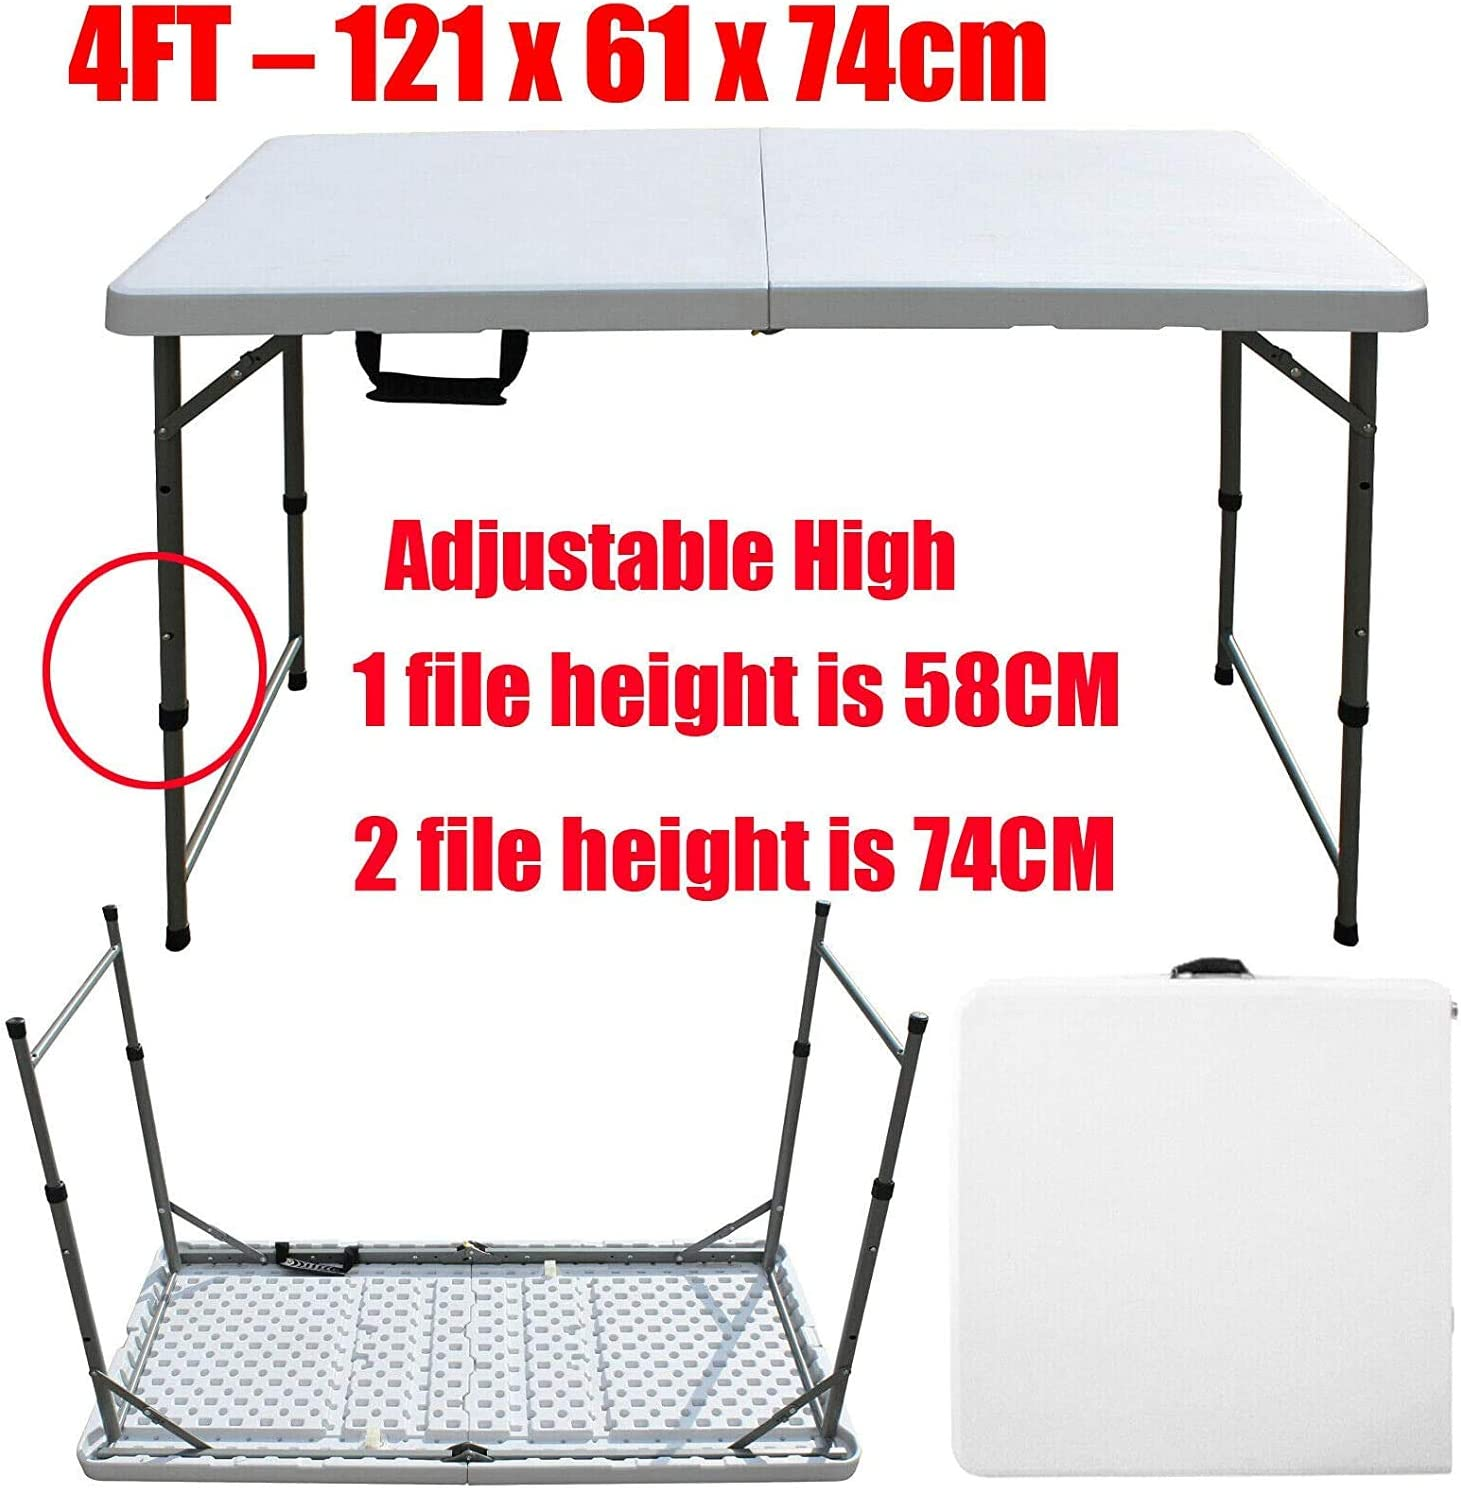 Sizes:121 x 61 x 74cm Approx Folding Table Outdoor Portable Street Stall Night Market Home Use Simple Rectangular Learning Plastic Dining Table